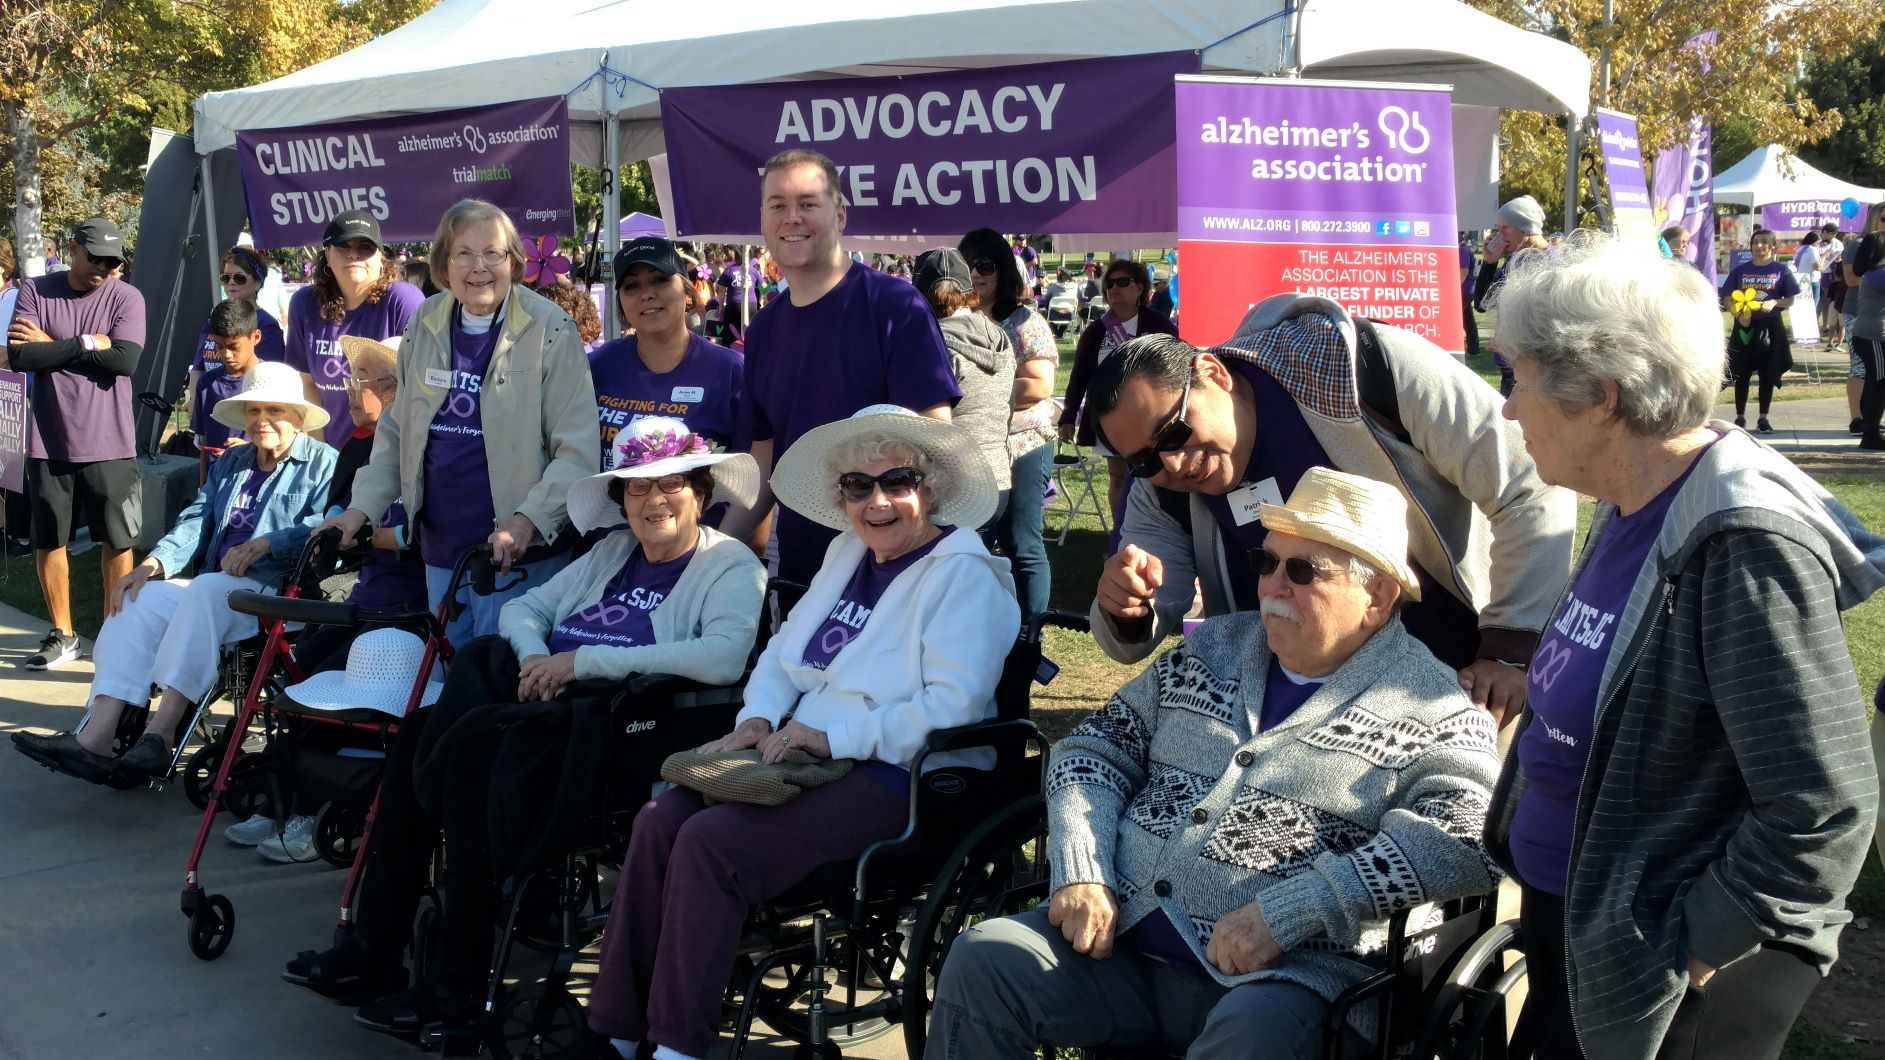 Residents of The Terraces at San Joaquin Gardens support the Alzheimer's walk